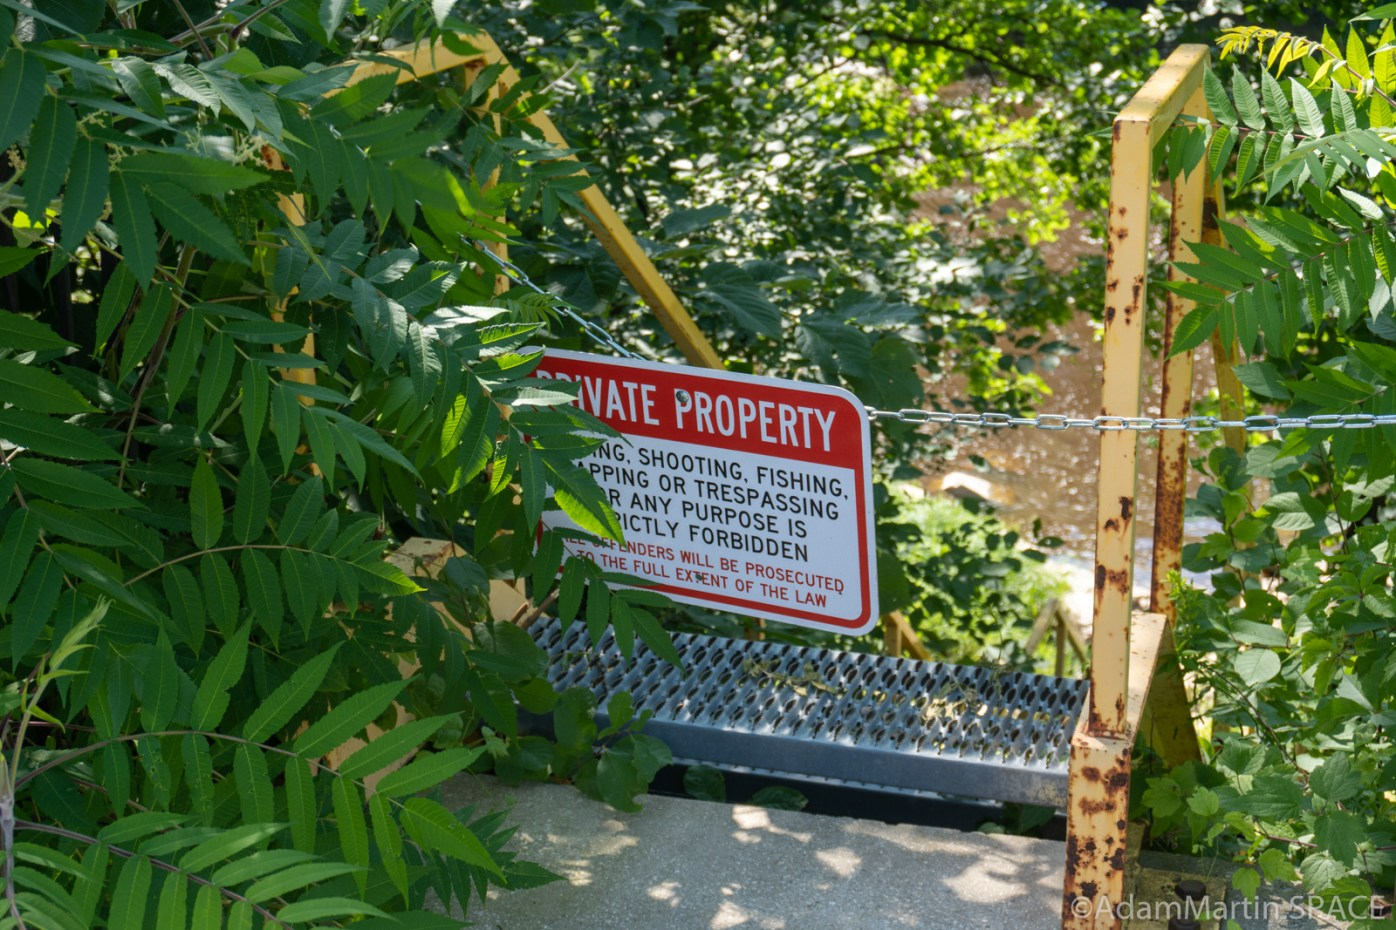 Little Bull Falls - Private Property posted on access ladder